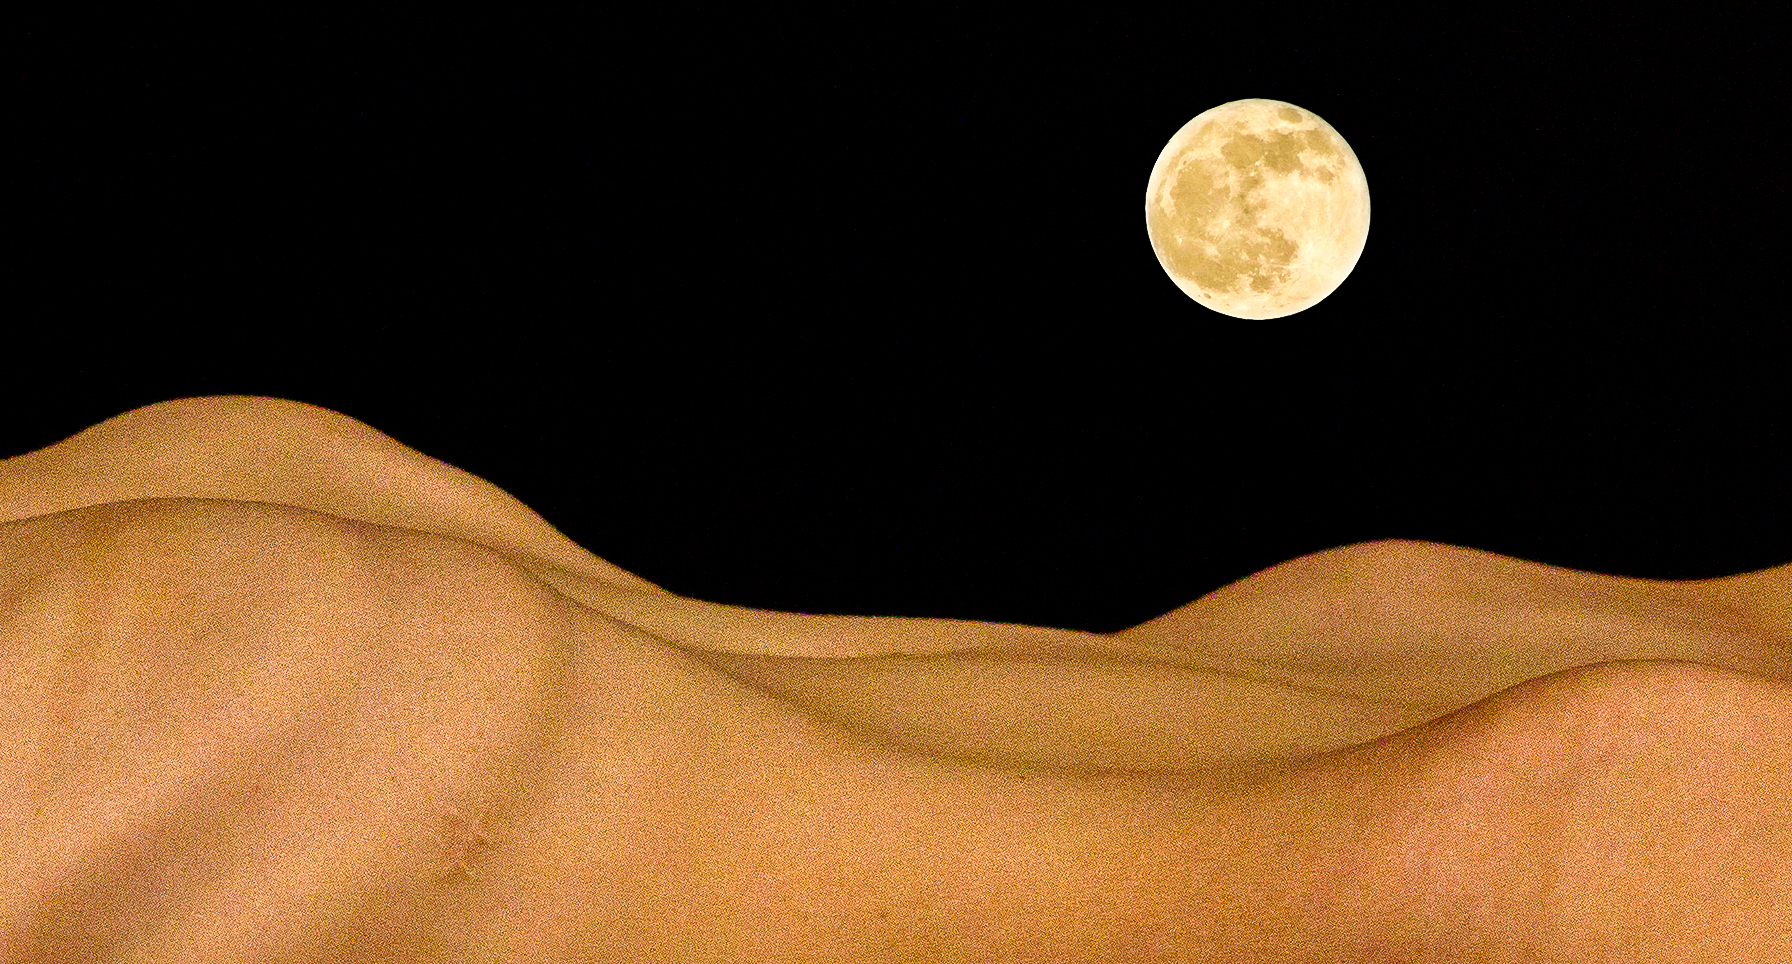 Anatomical_Landscapes_I_-_Desert_Moon.jpg